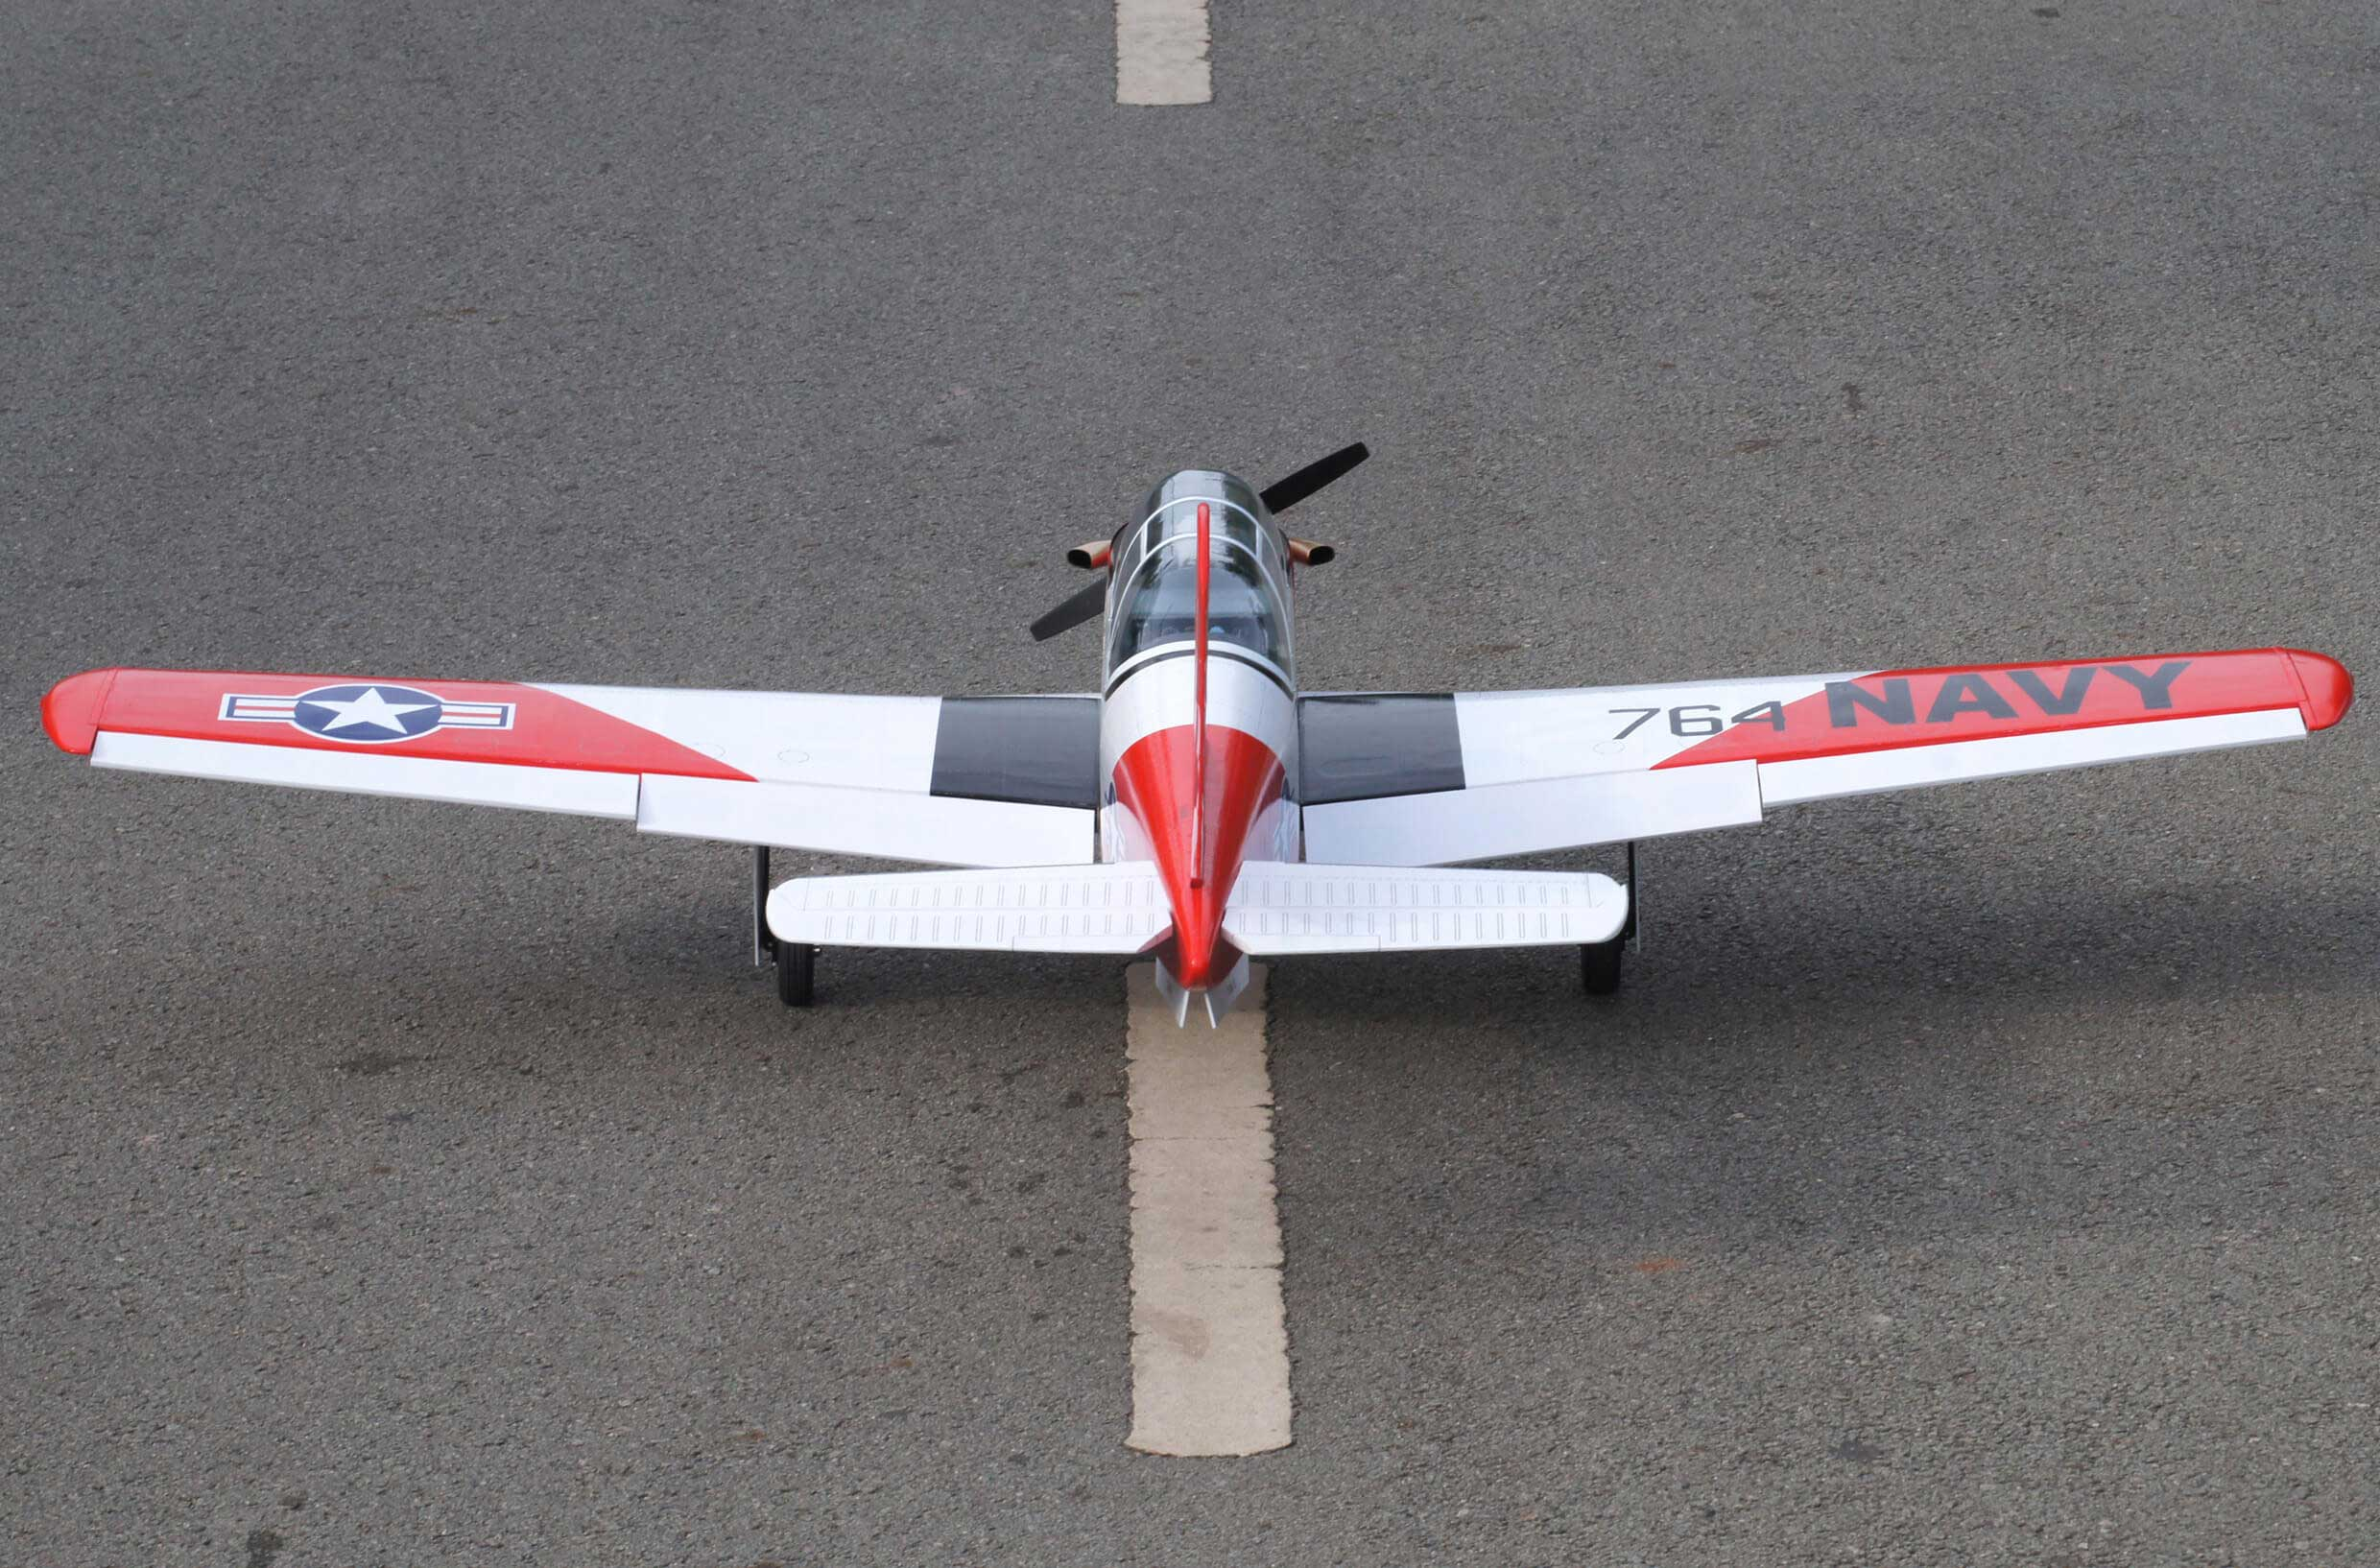 T-34 Turbo Mentor 46 size EP-GP Red-white version ターボメンター 両用機